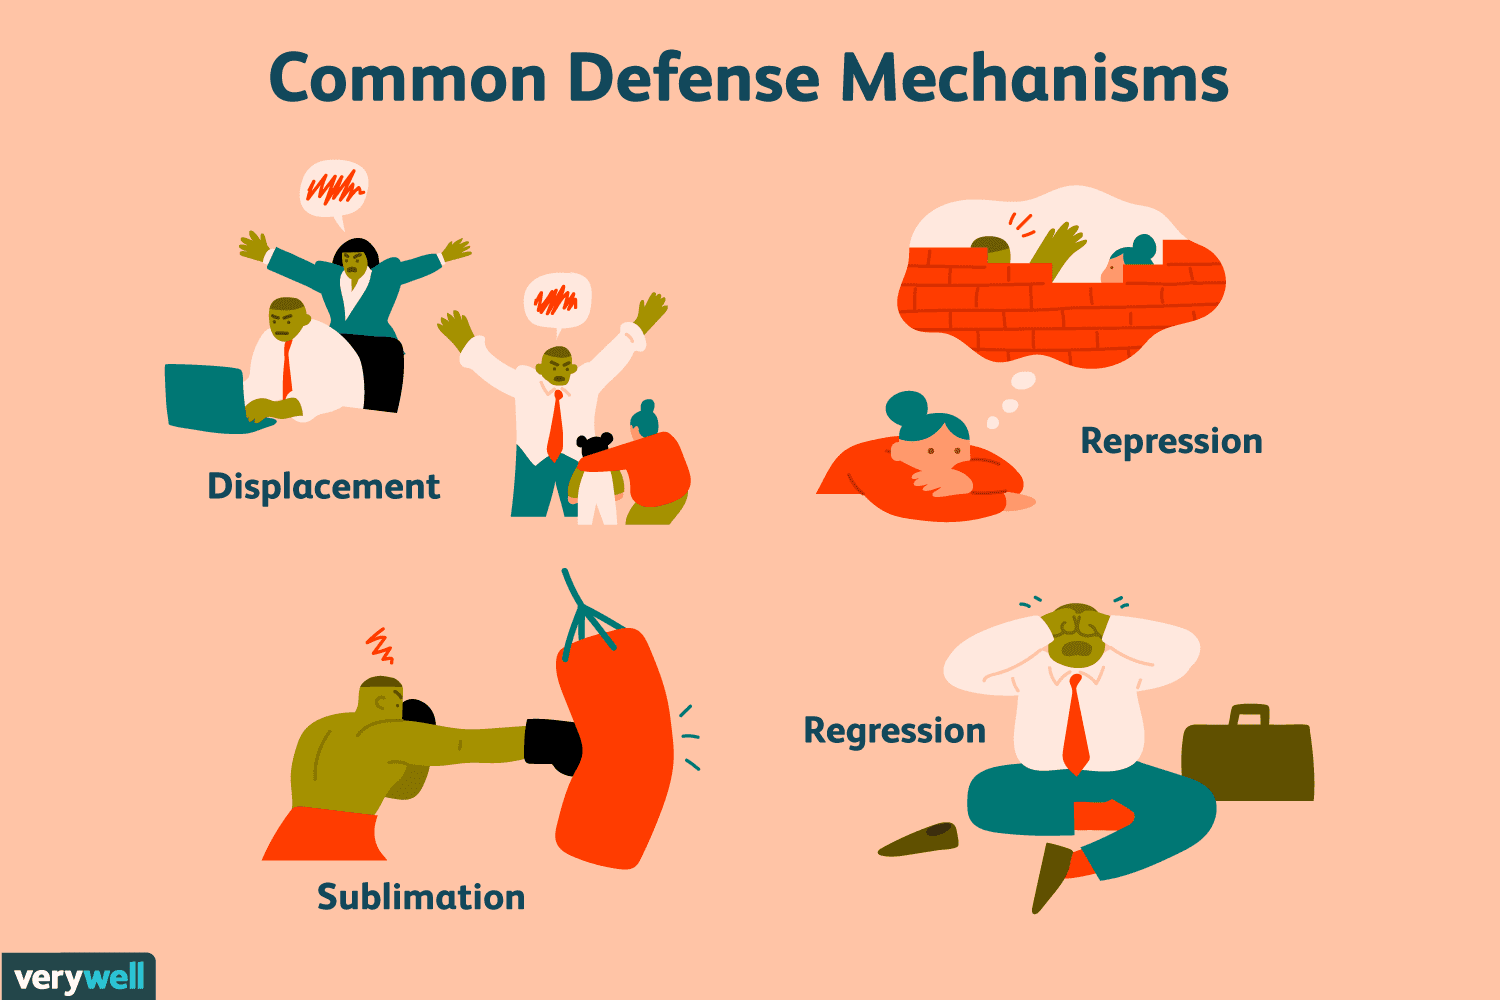 心理防衛機制 Defense mechanisms